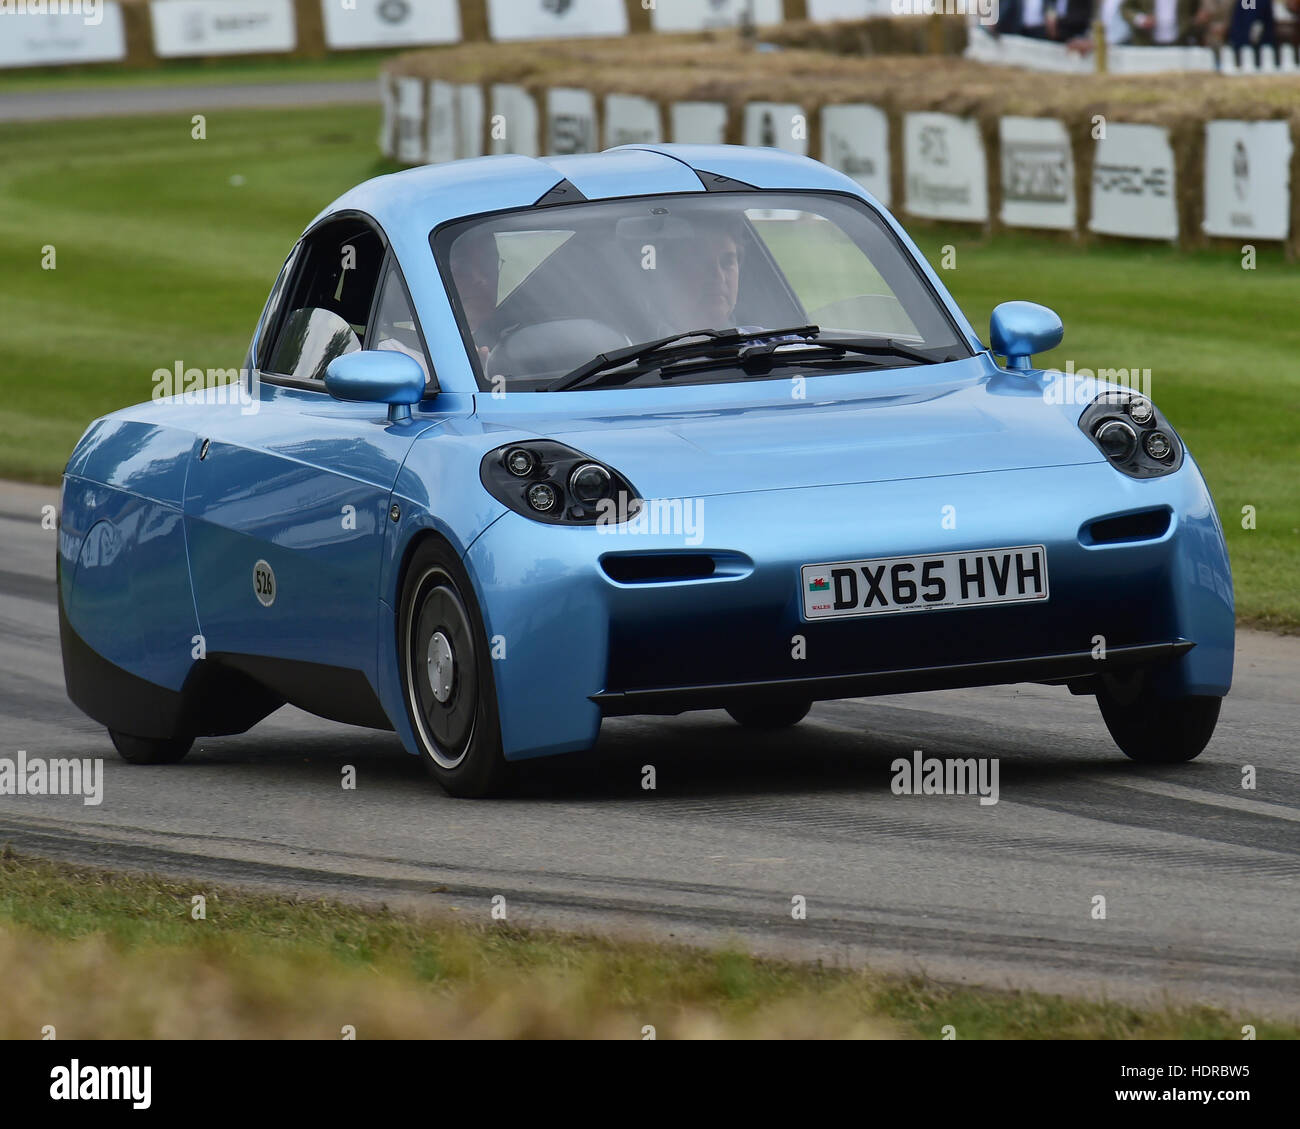 Riversimple Rasa, Goodwood Festival of Speed, 2016. automobiles, cars, entertainment, Festival of Speed, FoS, Full - Stock Image